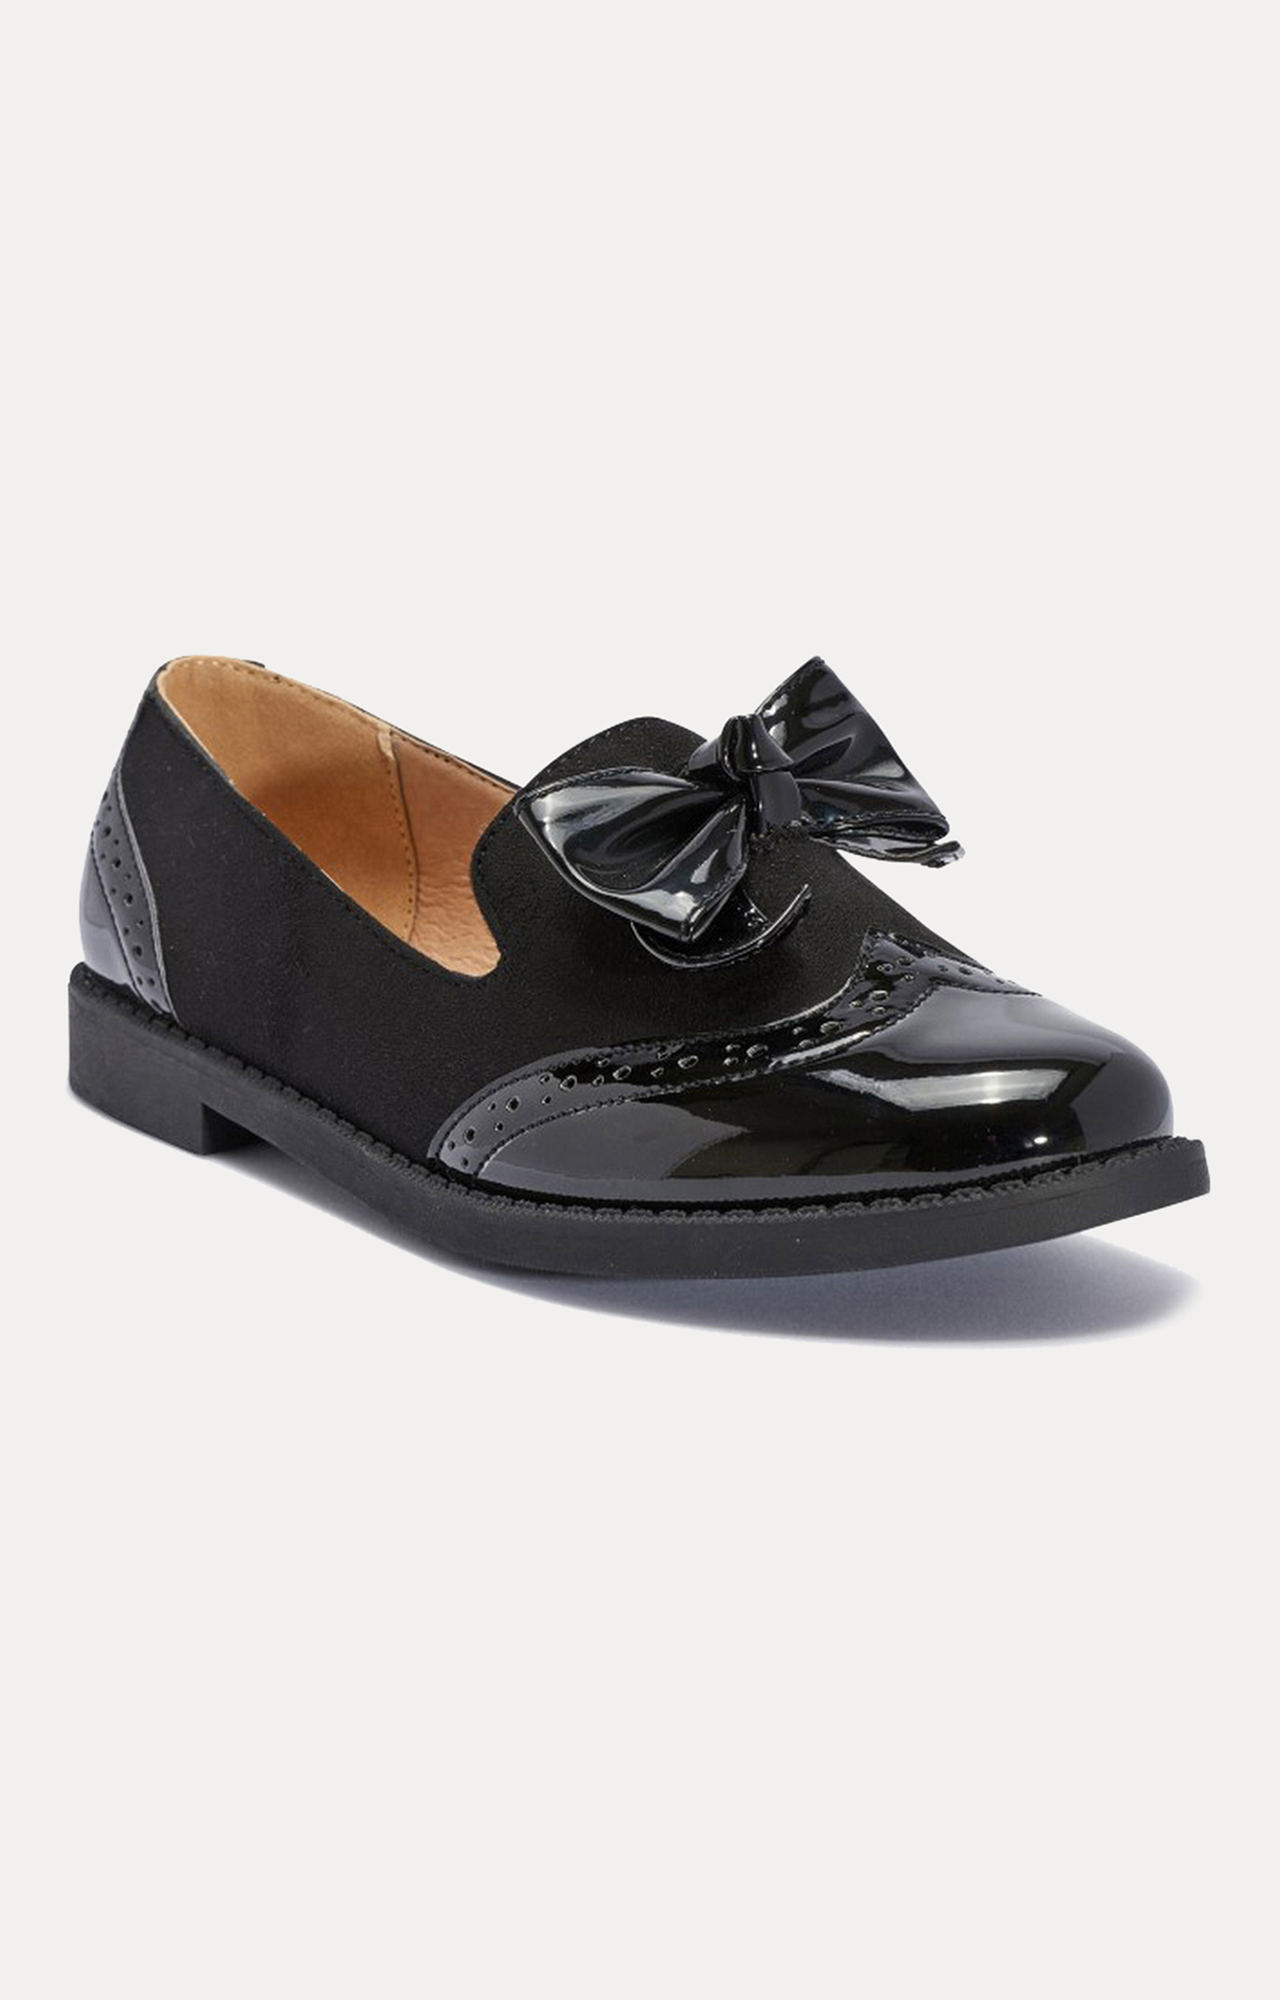 Truffle Collection   Black Oxfords